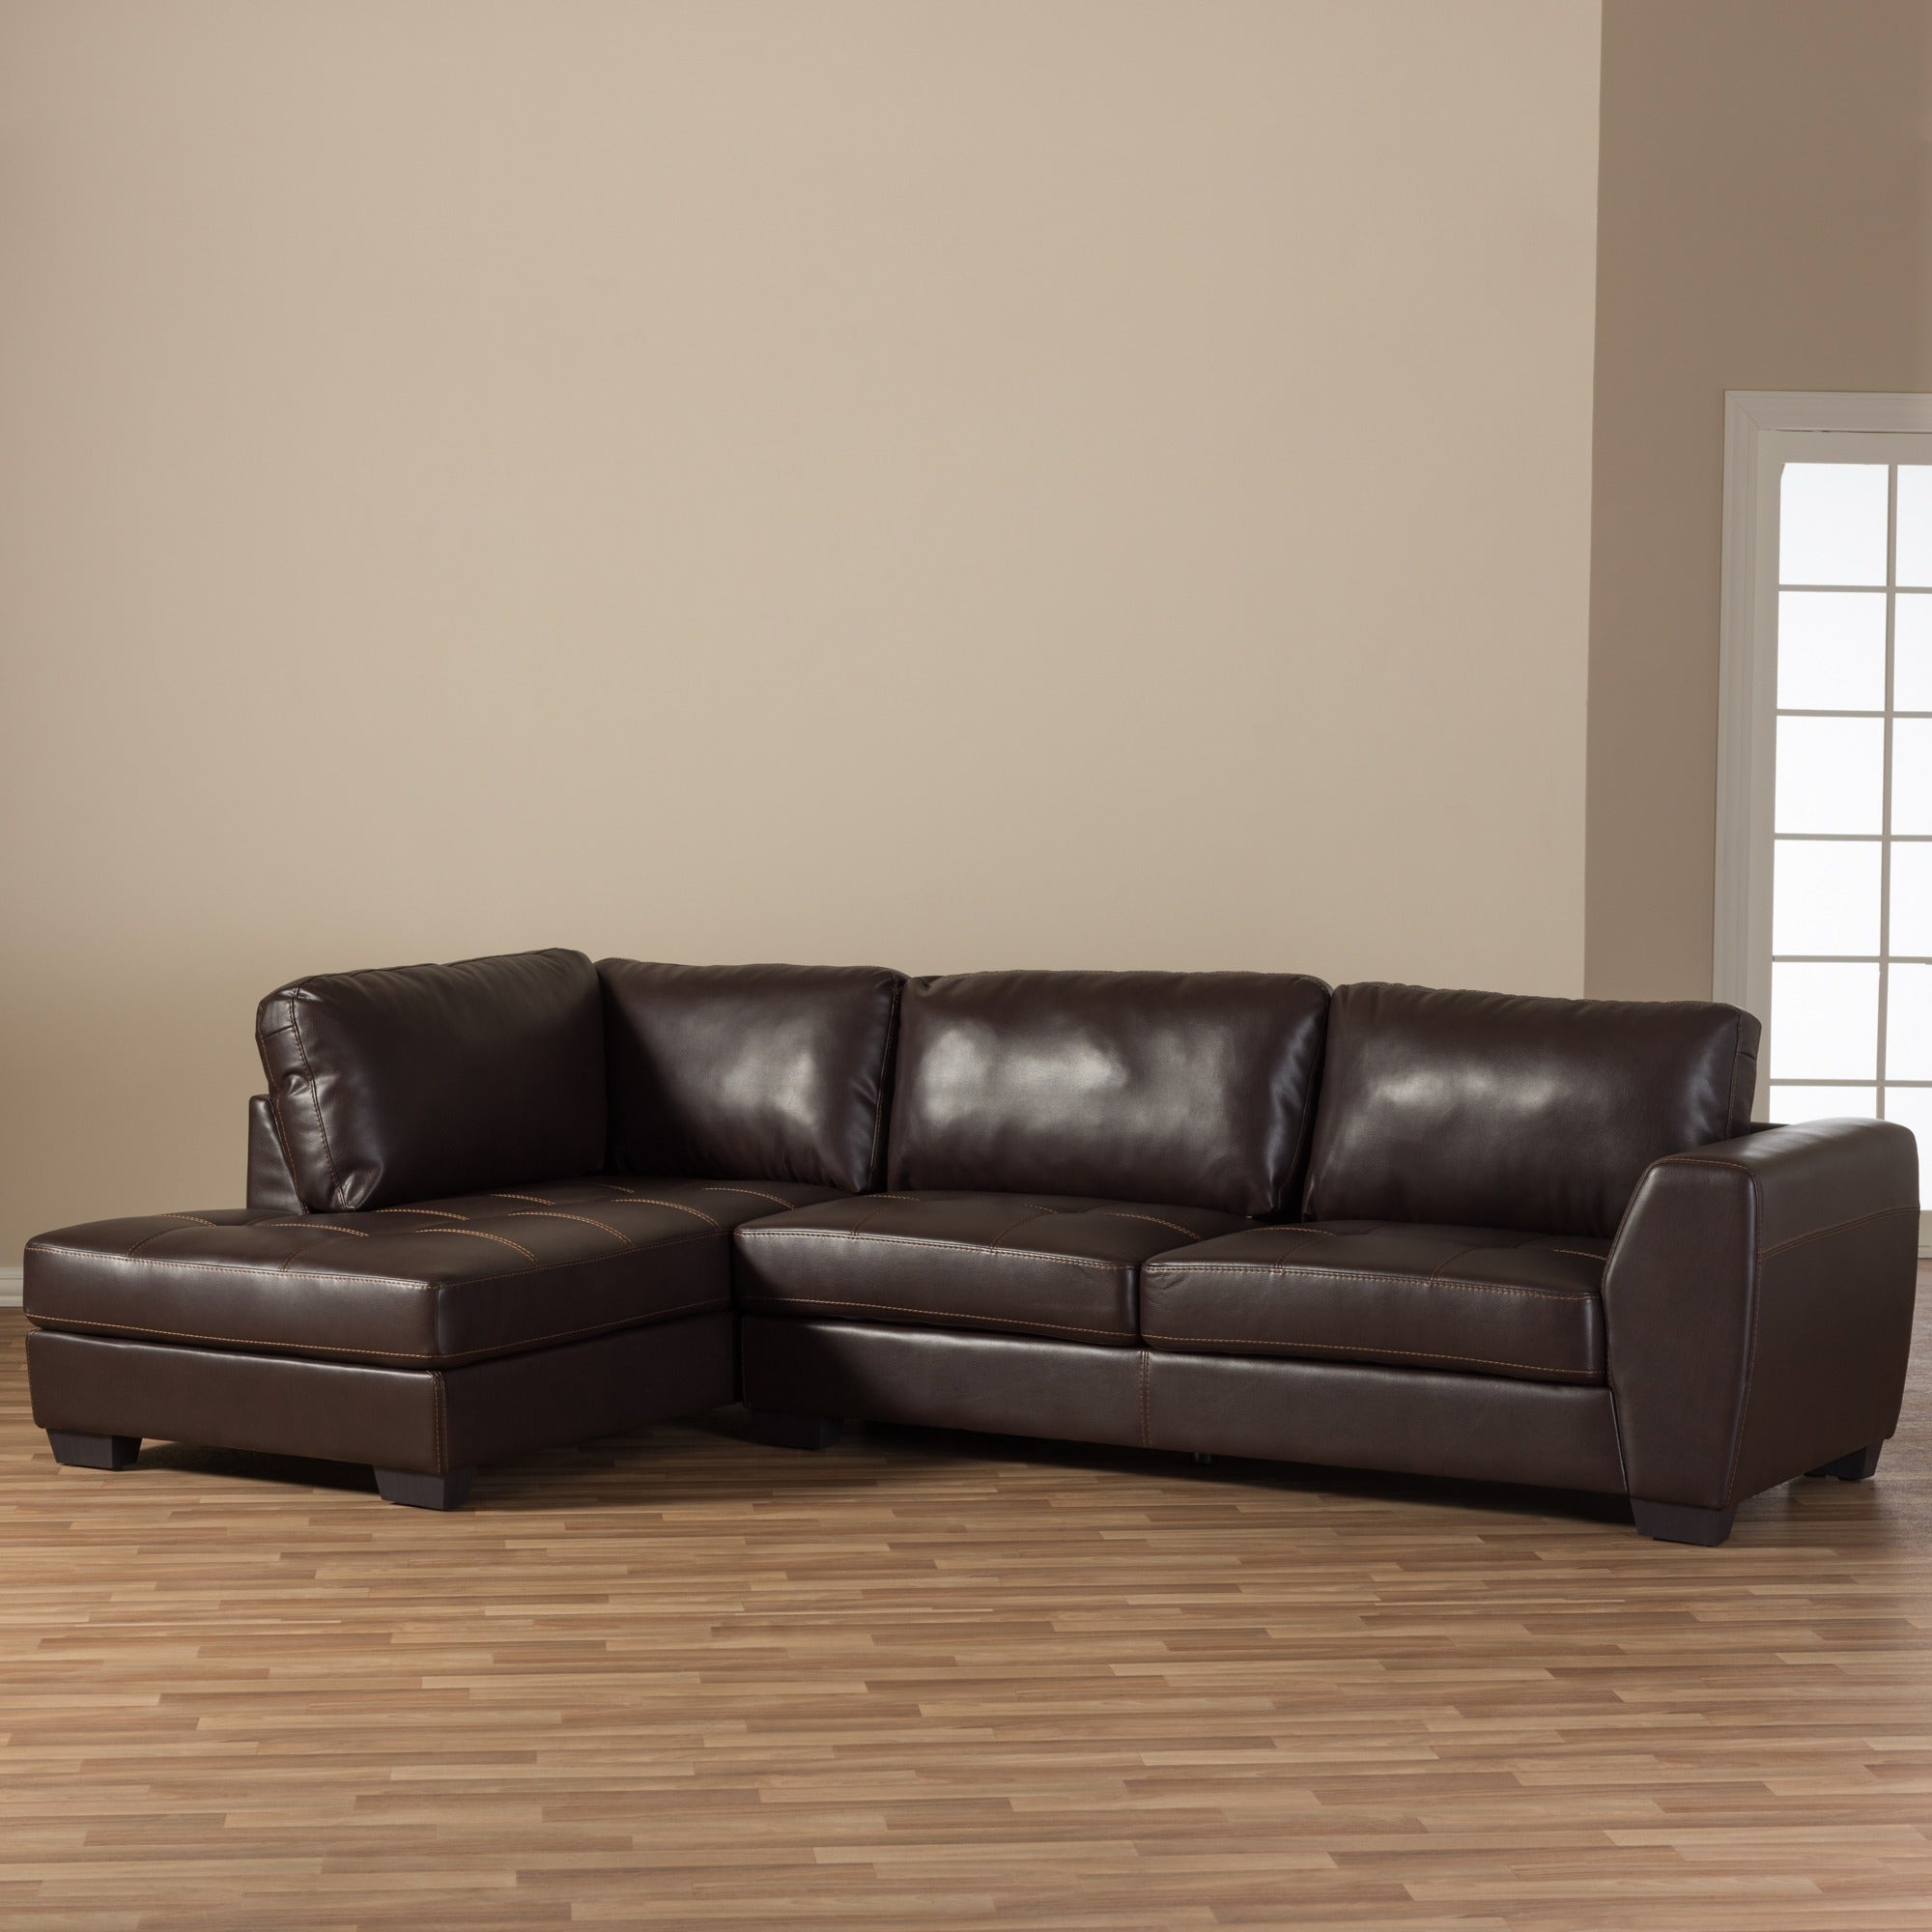 usa sectional couch global sets by modern furniture room black sofa living shop